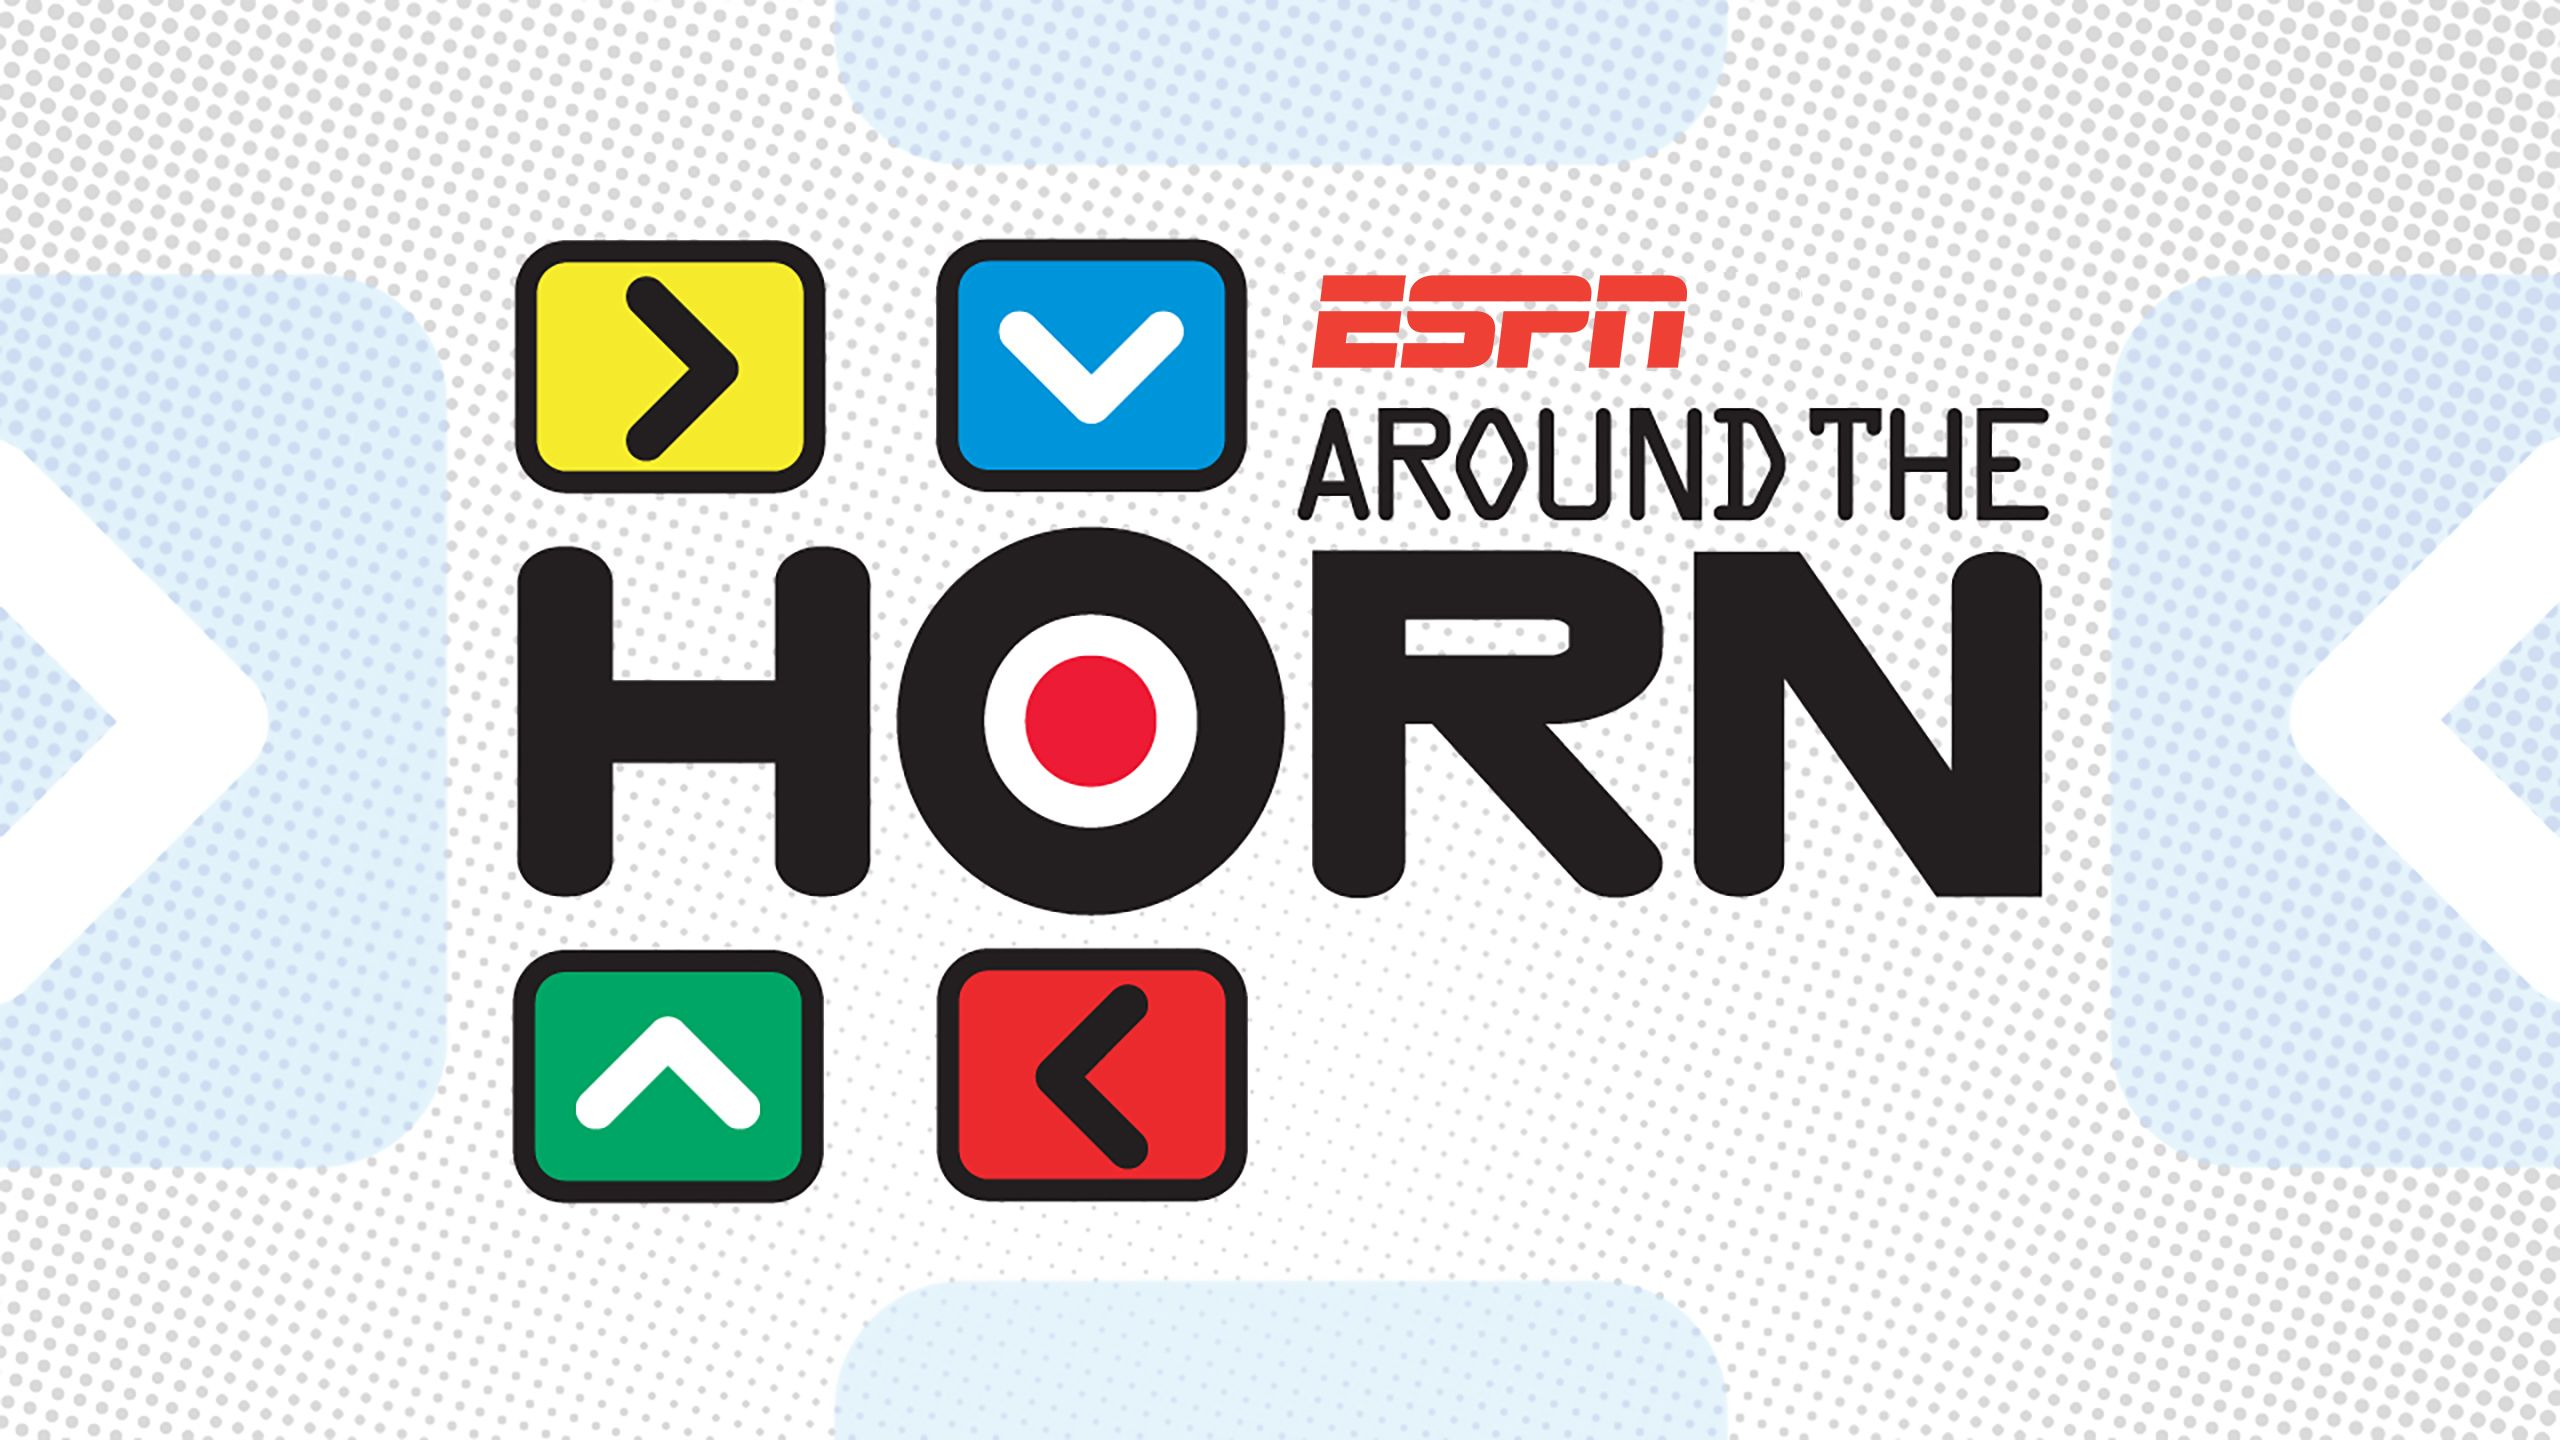 Fri, 12/15 - Around The Horn